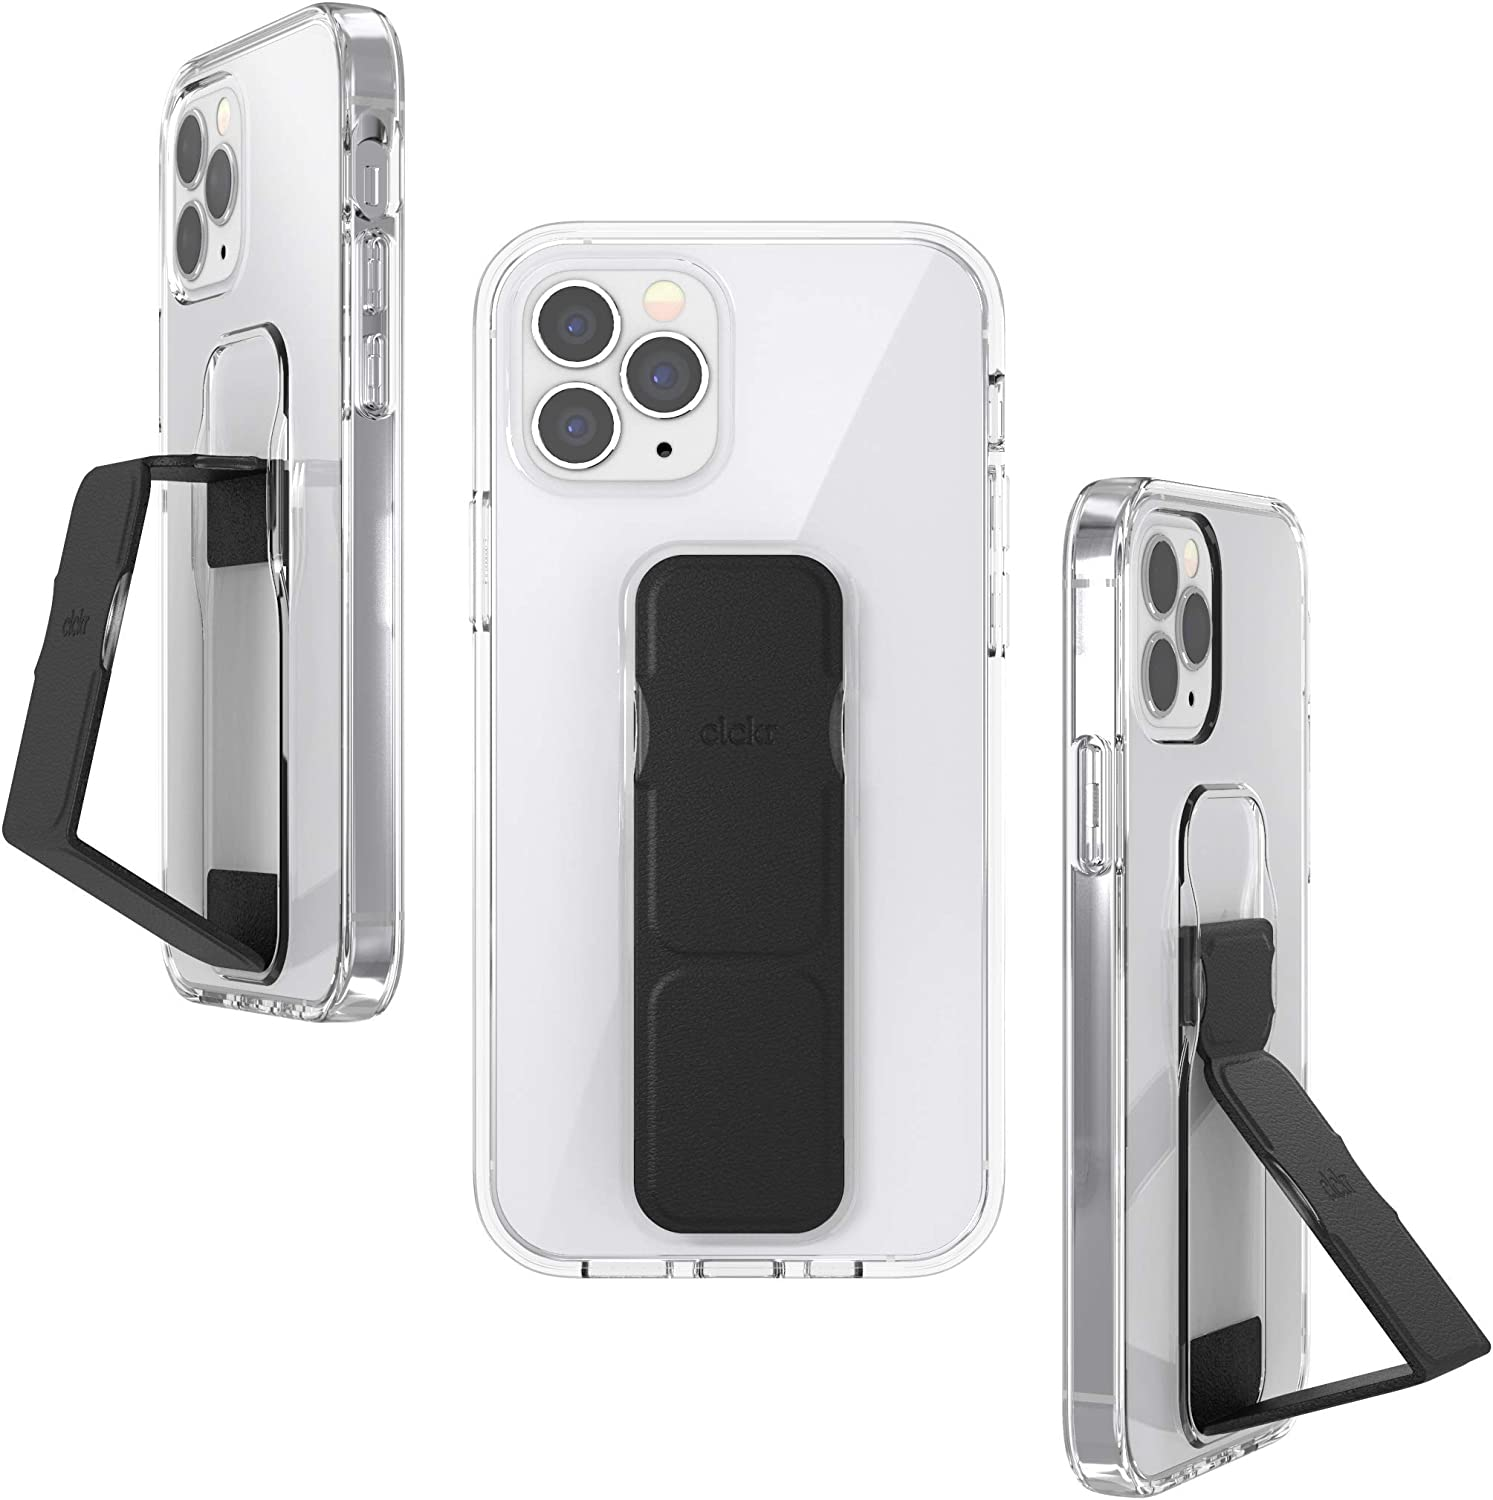 CLCKR Compatible with Challenge the lowest price iPhone Kicksta Very popular Case 12 Pro